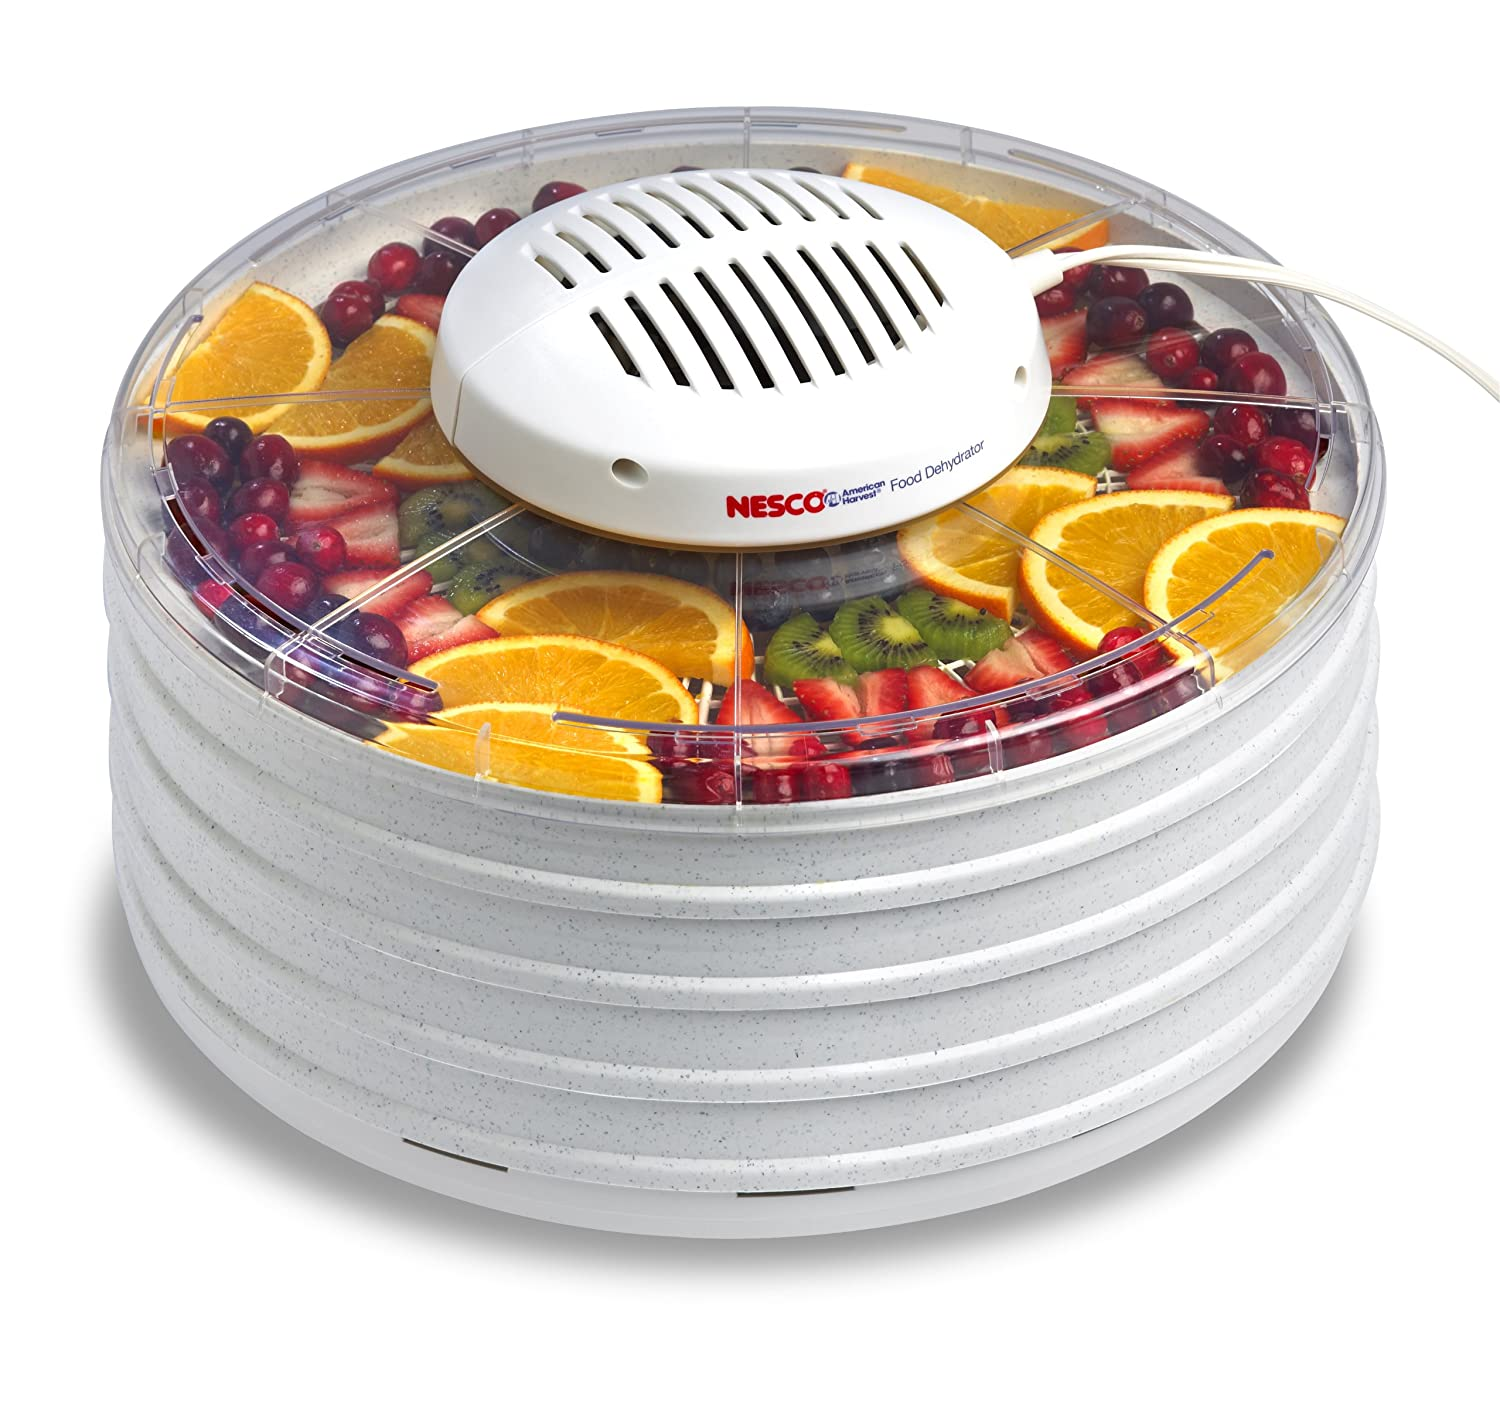 The Nesco FD-37A American Harvest is a high quality yet cheap food dehydrator.